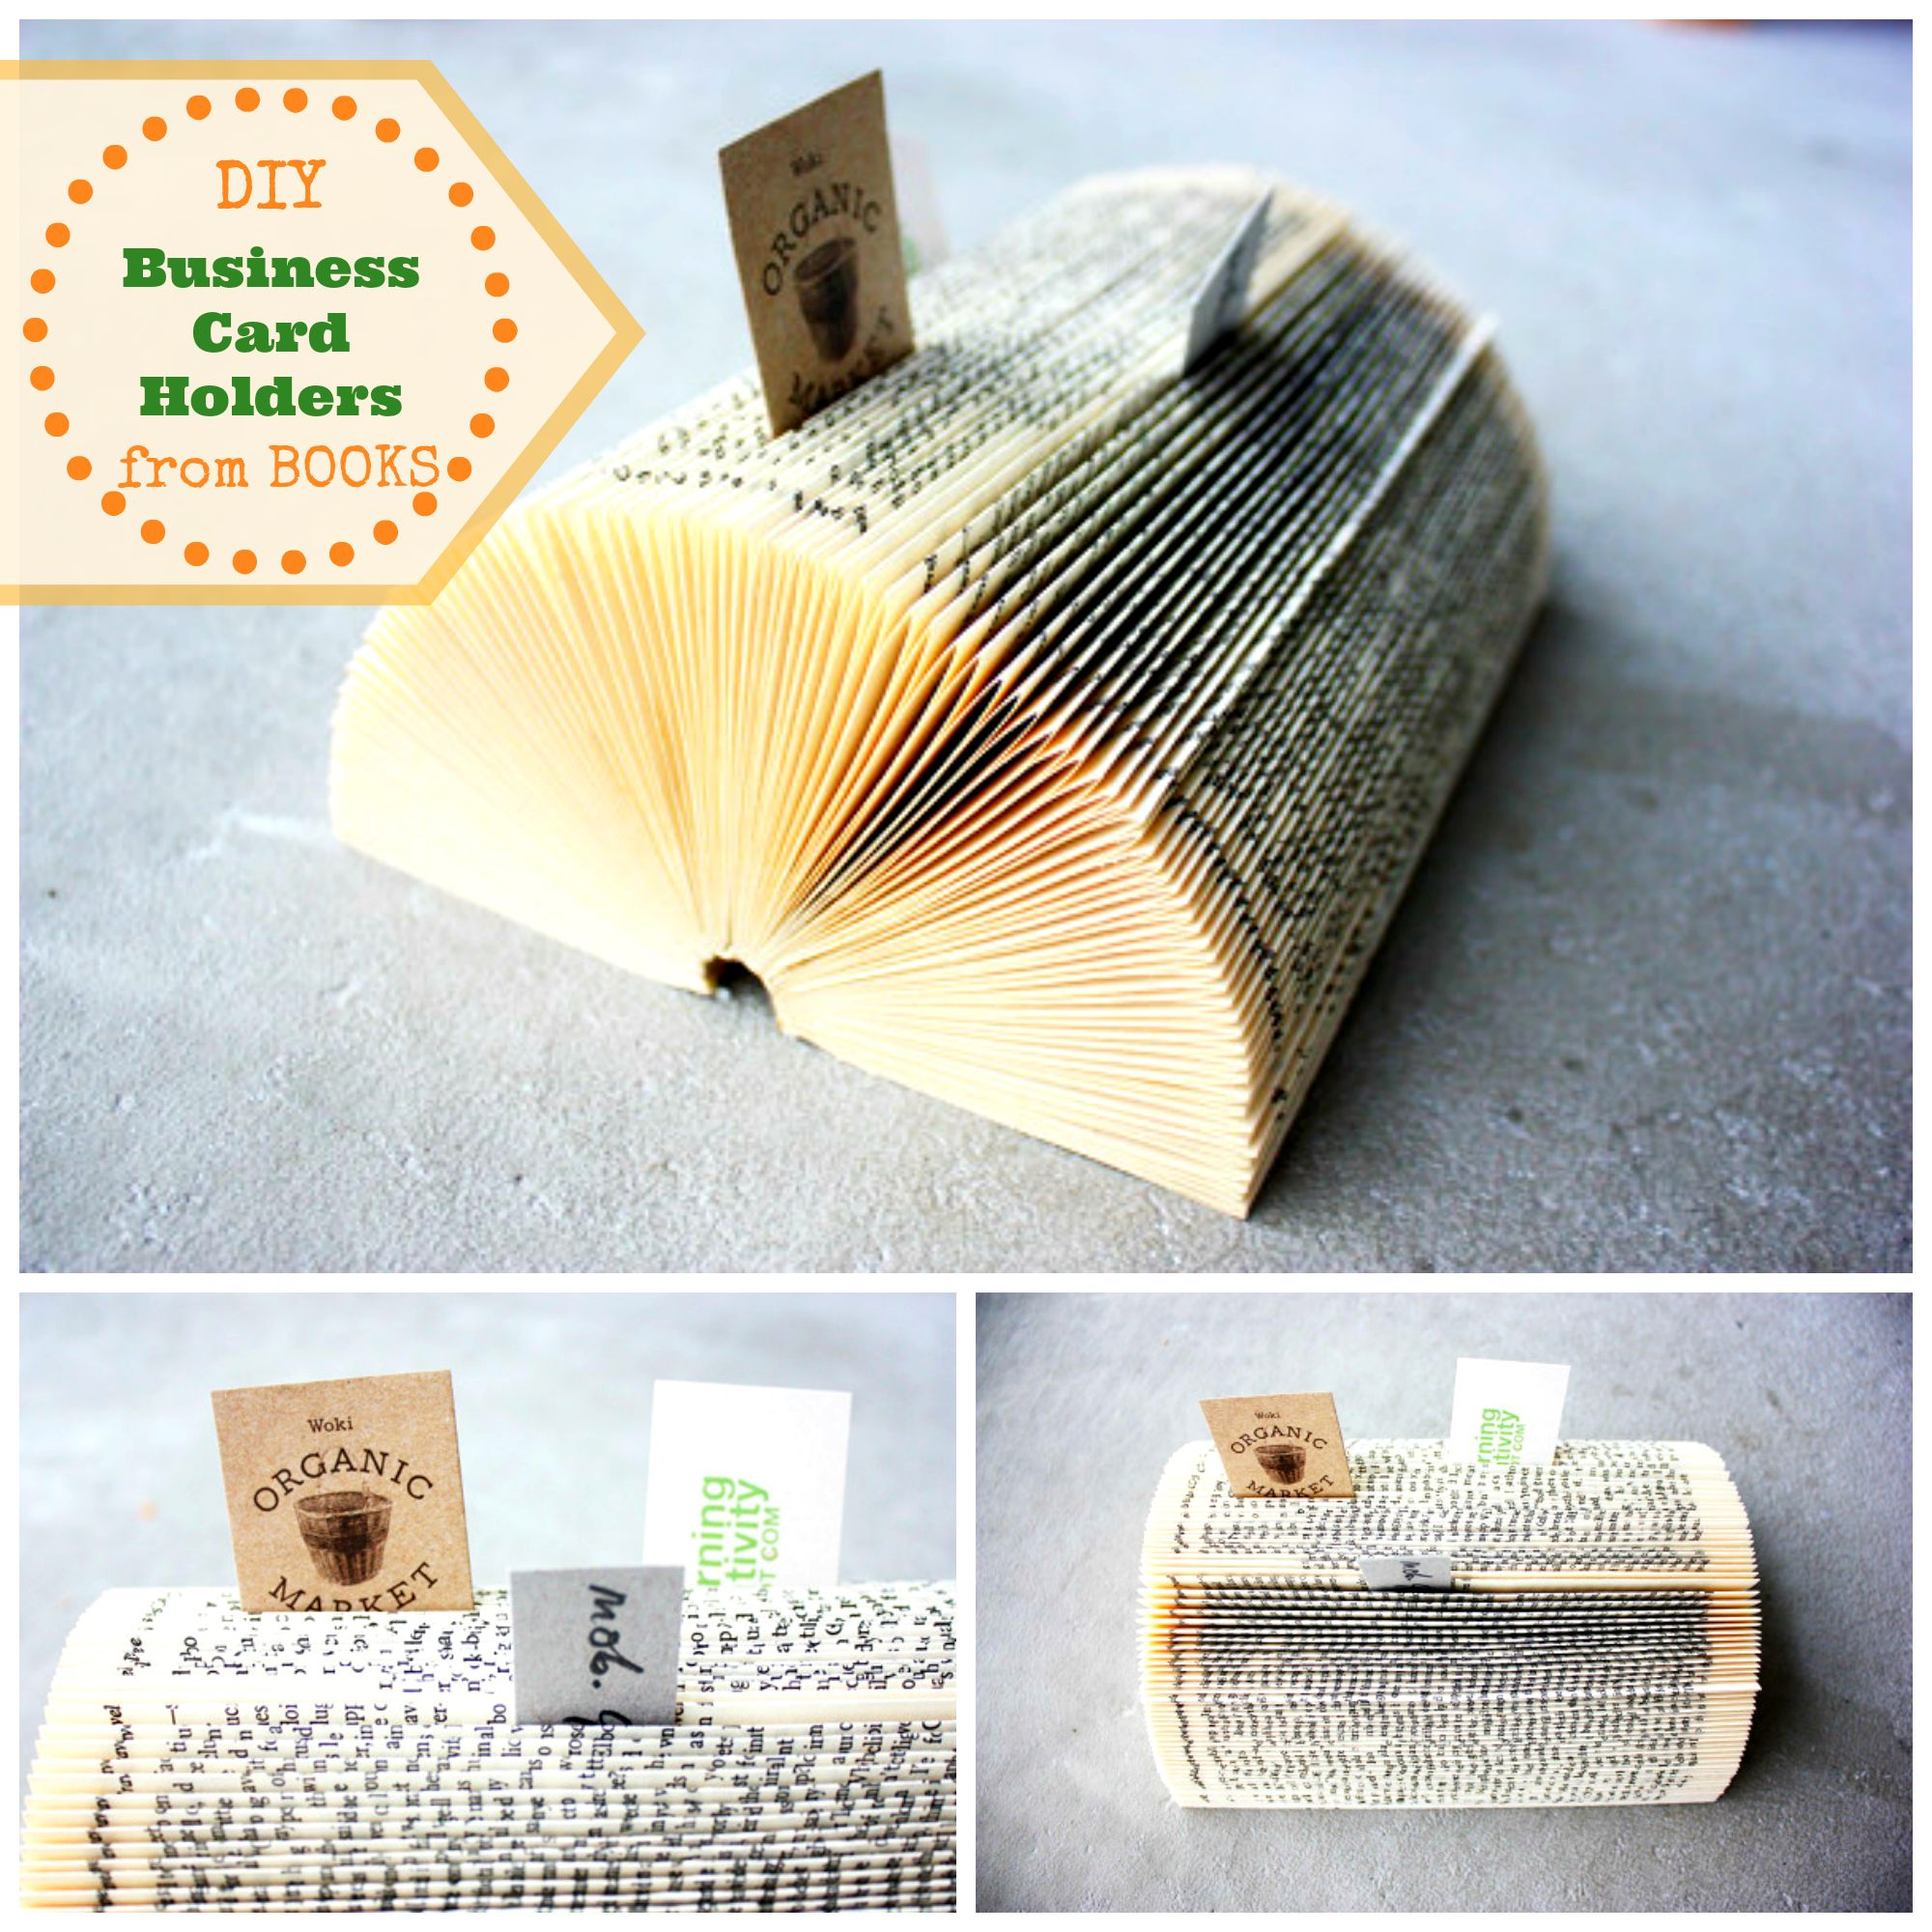 How To Make A Diy Business Card Holder From An Old Book In 5 Diy Tutorials Crafts Organizer Diy Business Cards Diy Book Business Card Displays